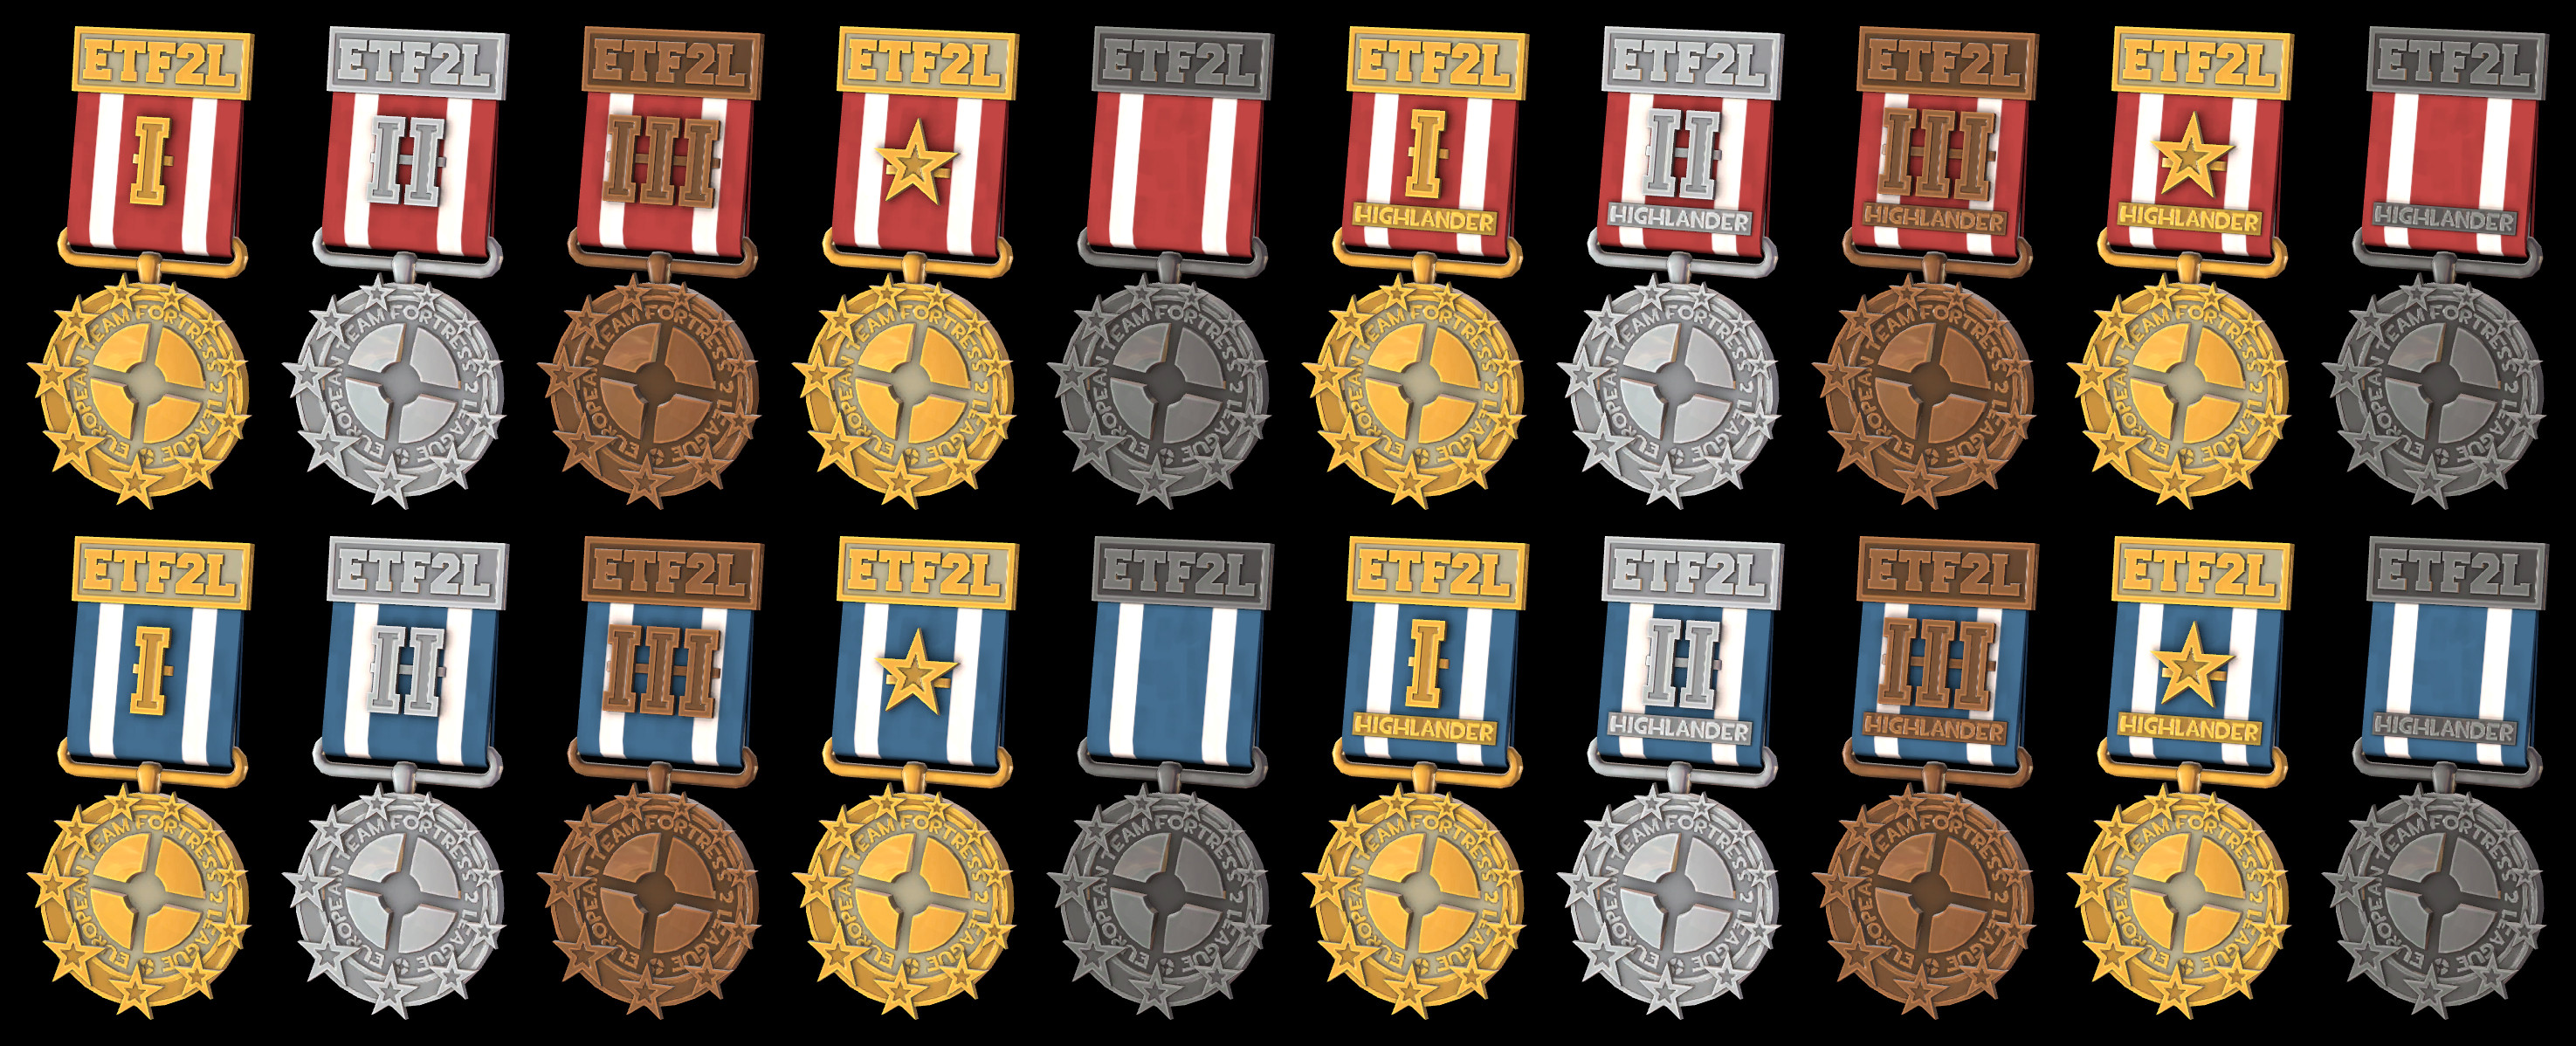 tf2 matchmaking medals Learn how to get into competitive tf2 (team fortress 2): highlander, sixes (6s) and more.